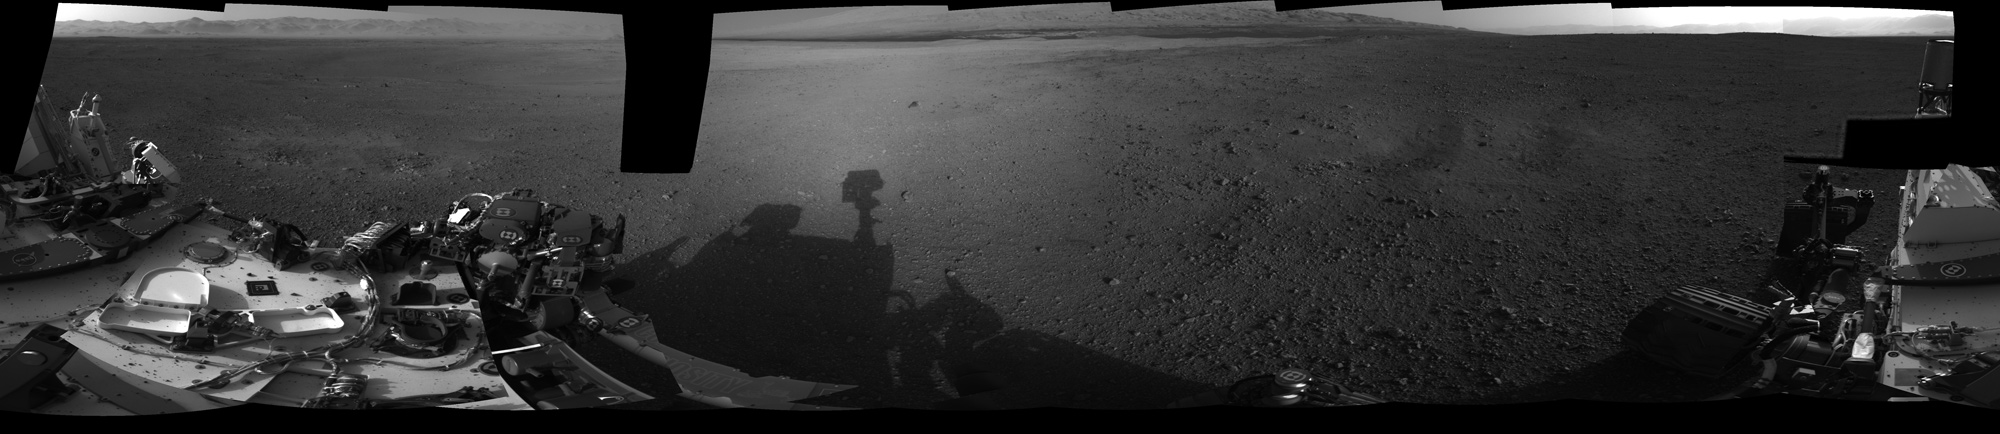 Crisp View from Inside Gale Crater: Panorama